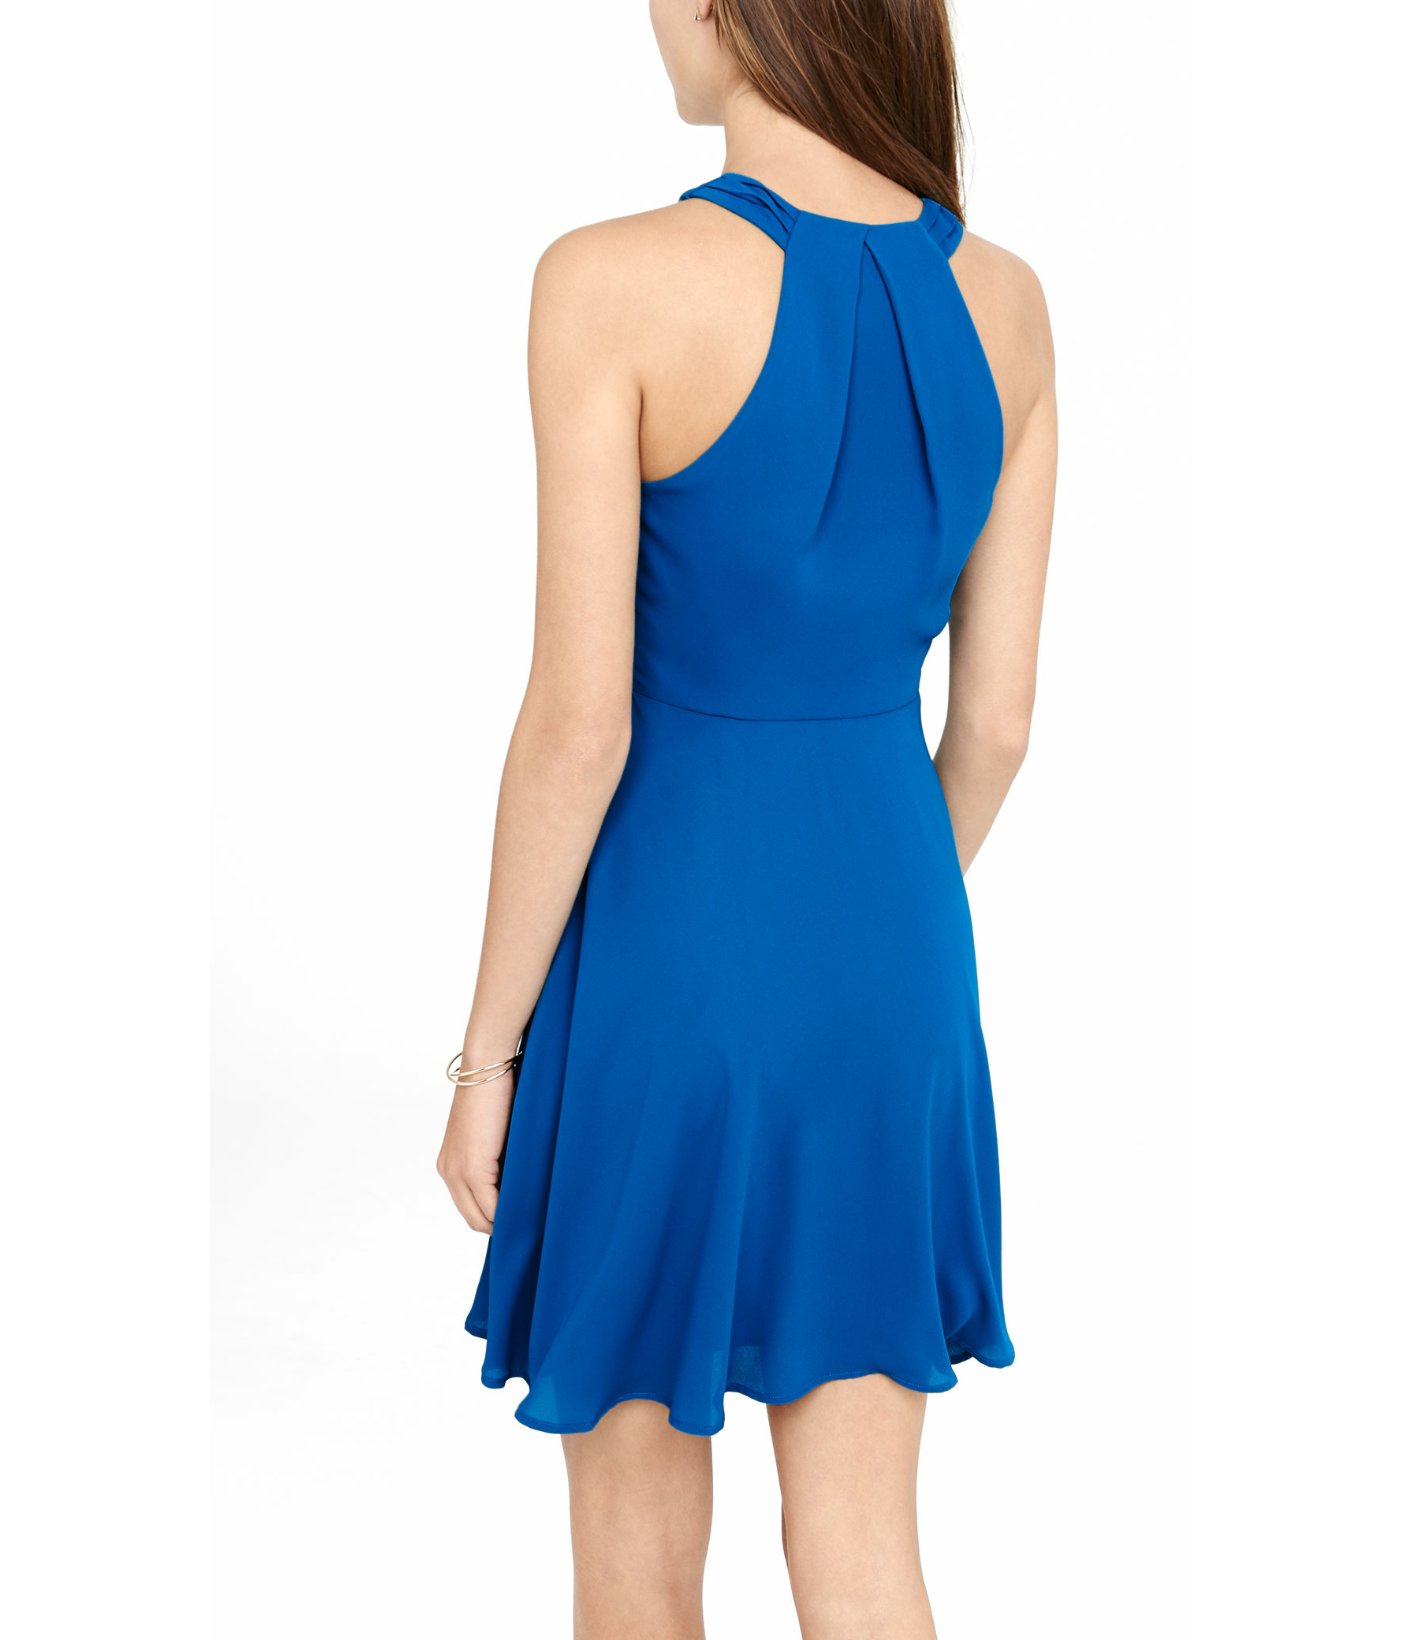 Express Blue Surplice Halter Fit And Flare Dress In Blue